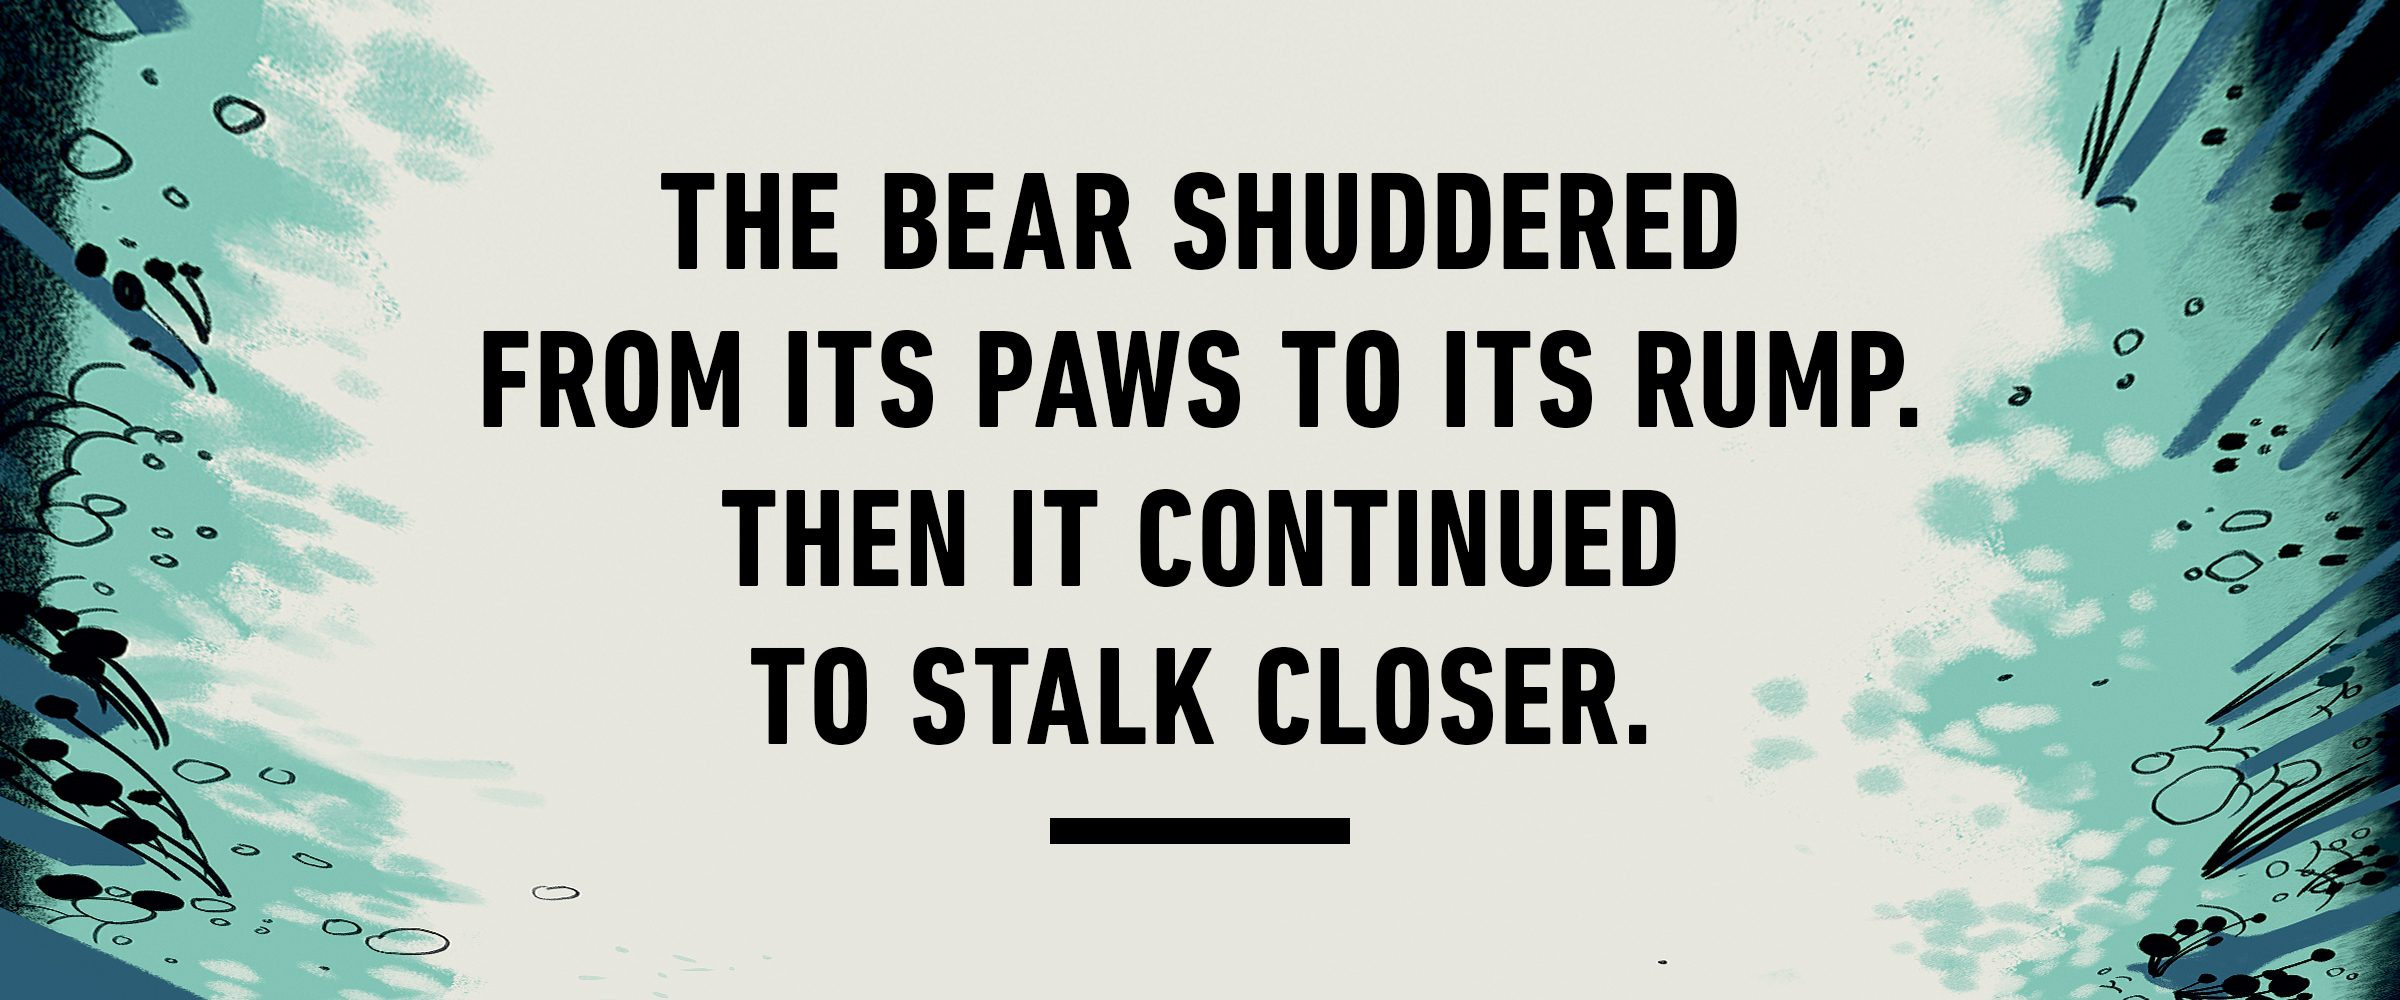 text: The bear shuddered from its paws to its rump. Then it continued to stalk closer.